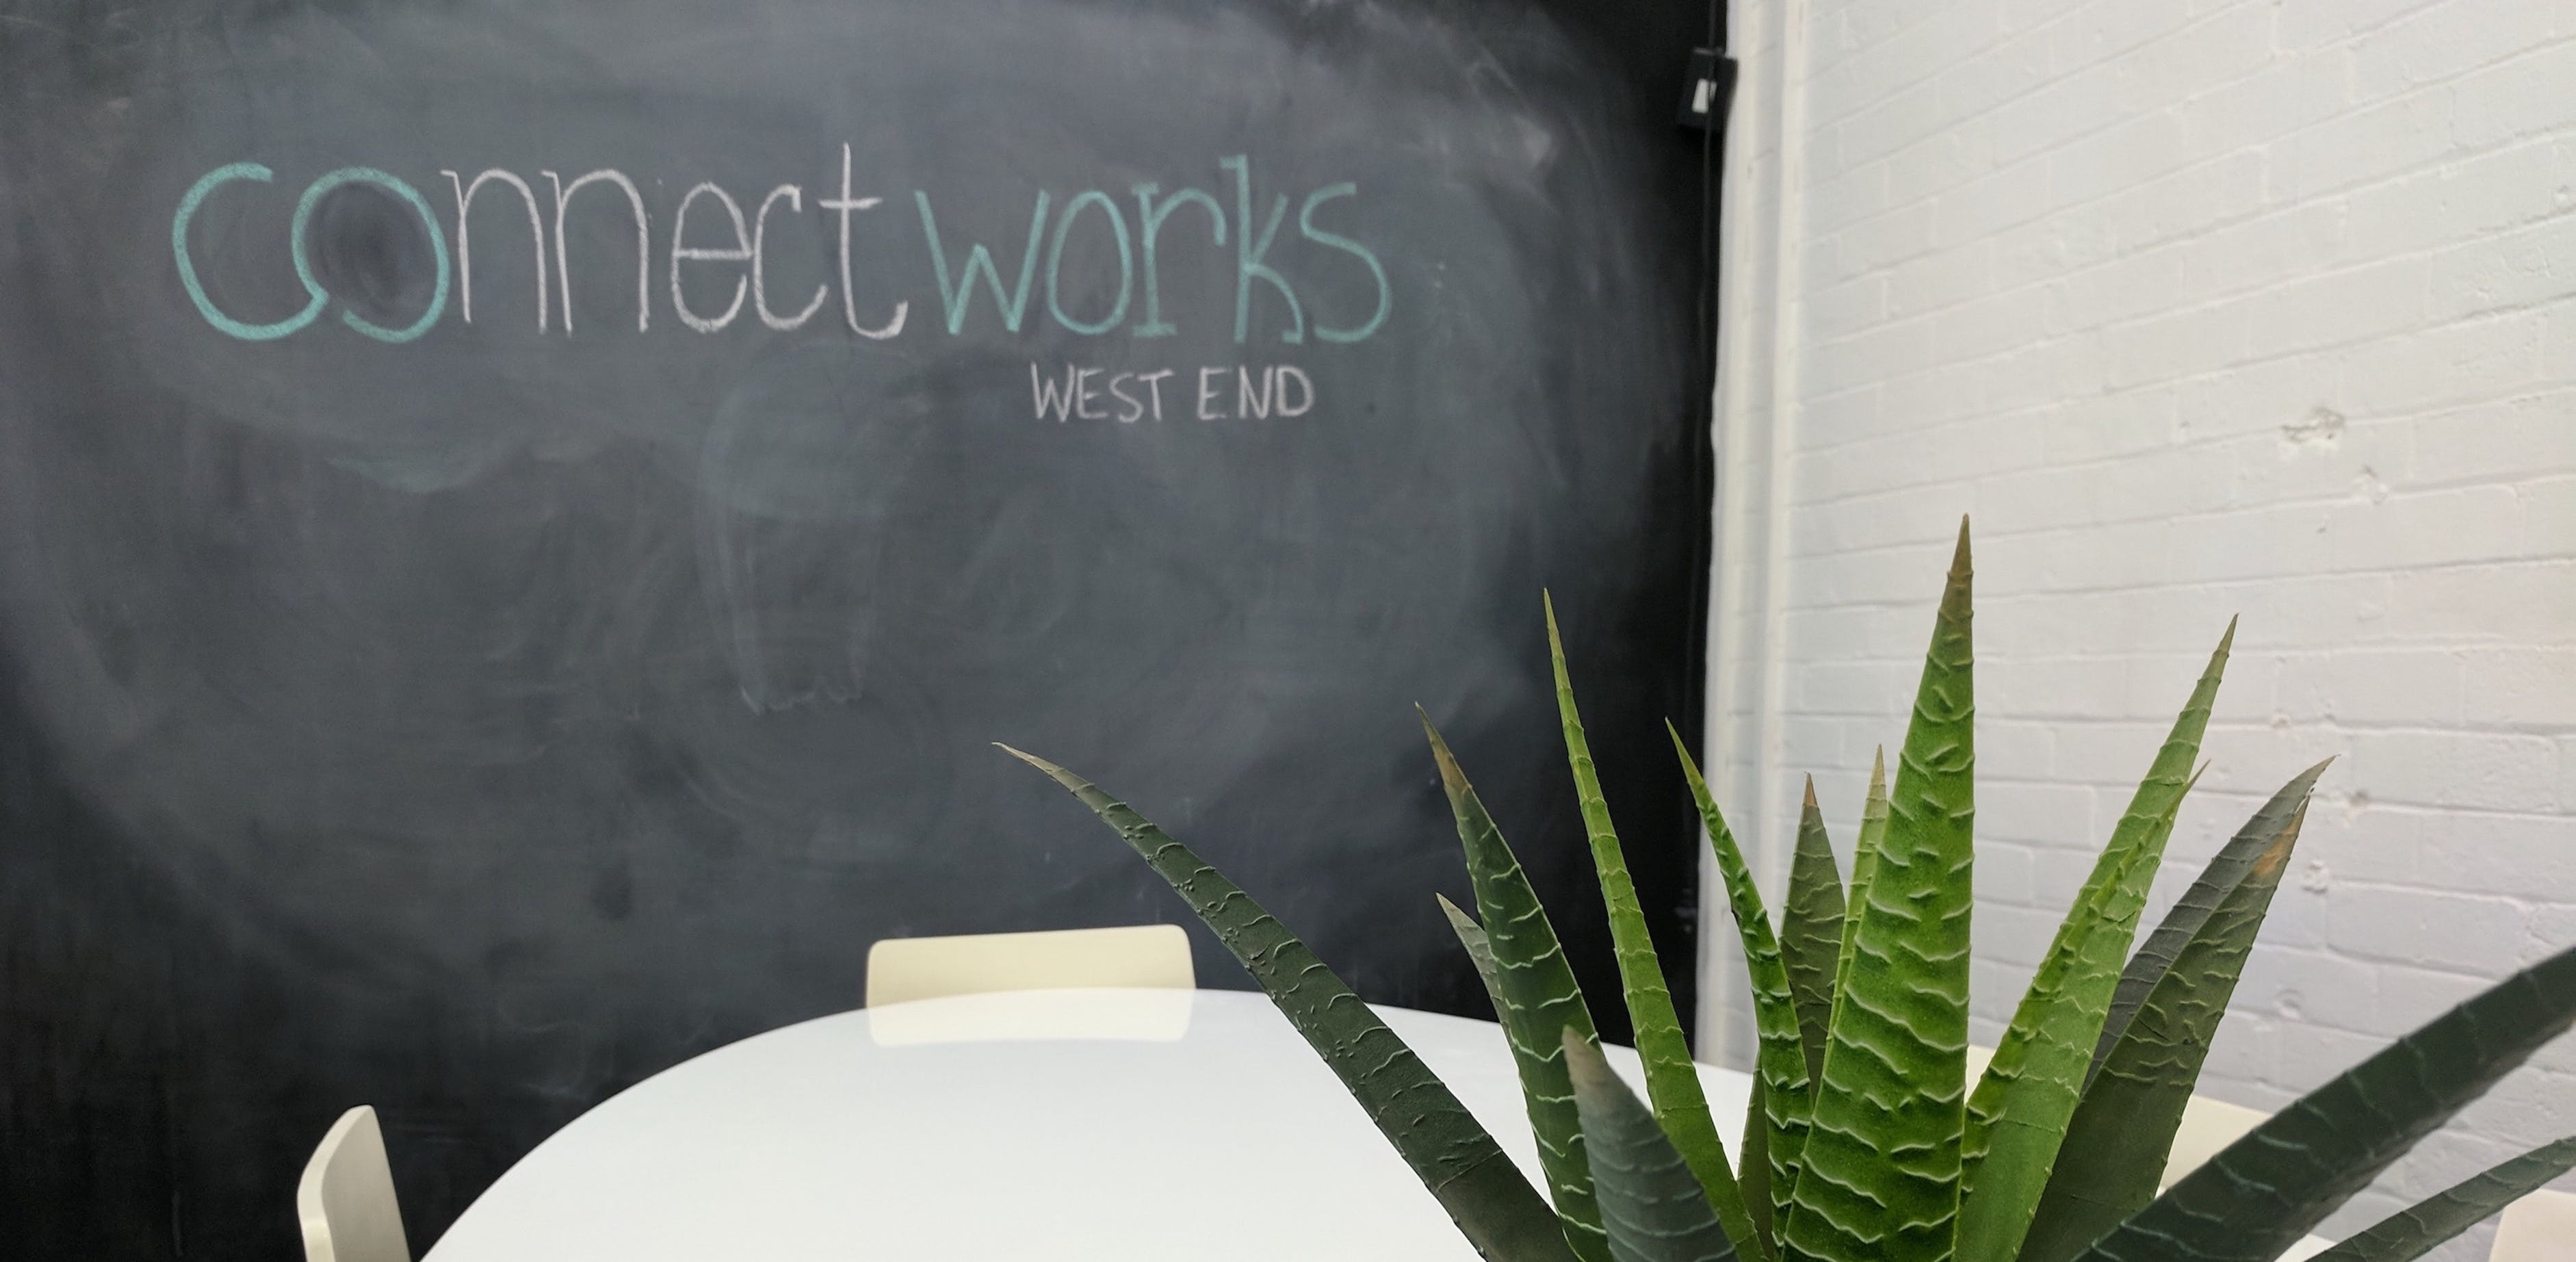 Private offices, open plan spaces and hot desking, coworking at Connectworks West End, image 1